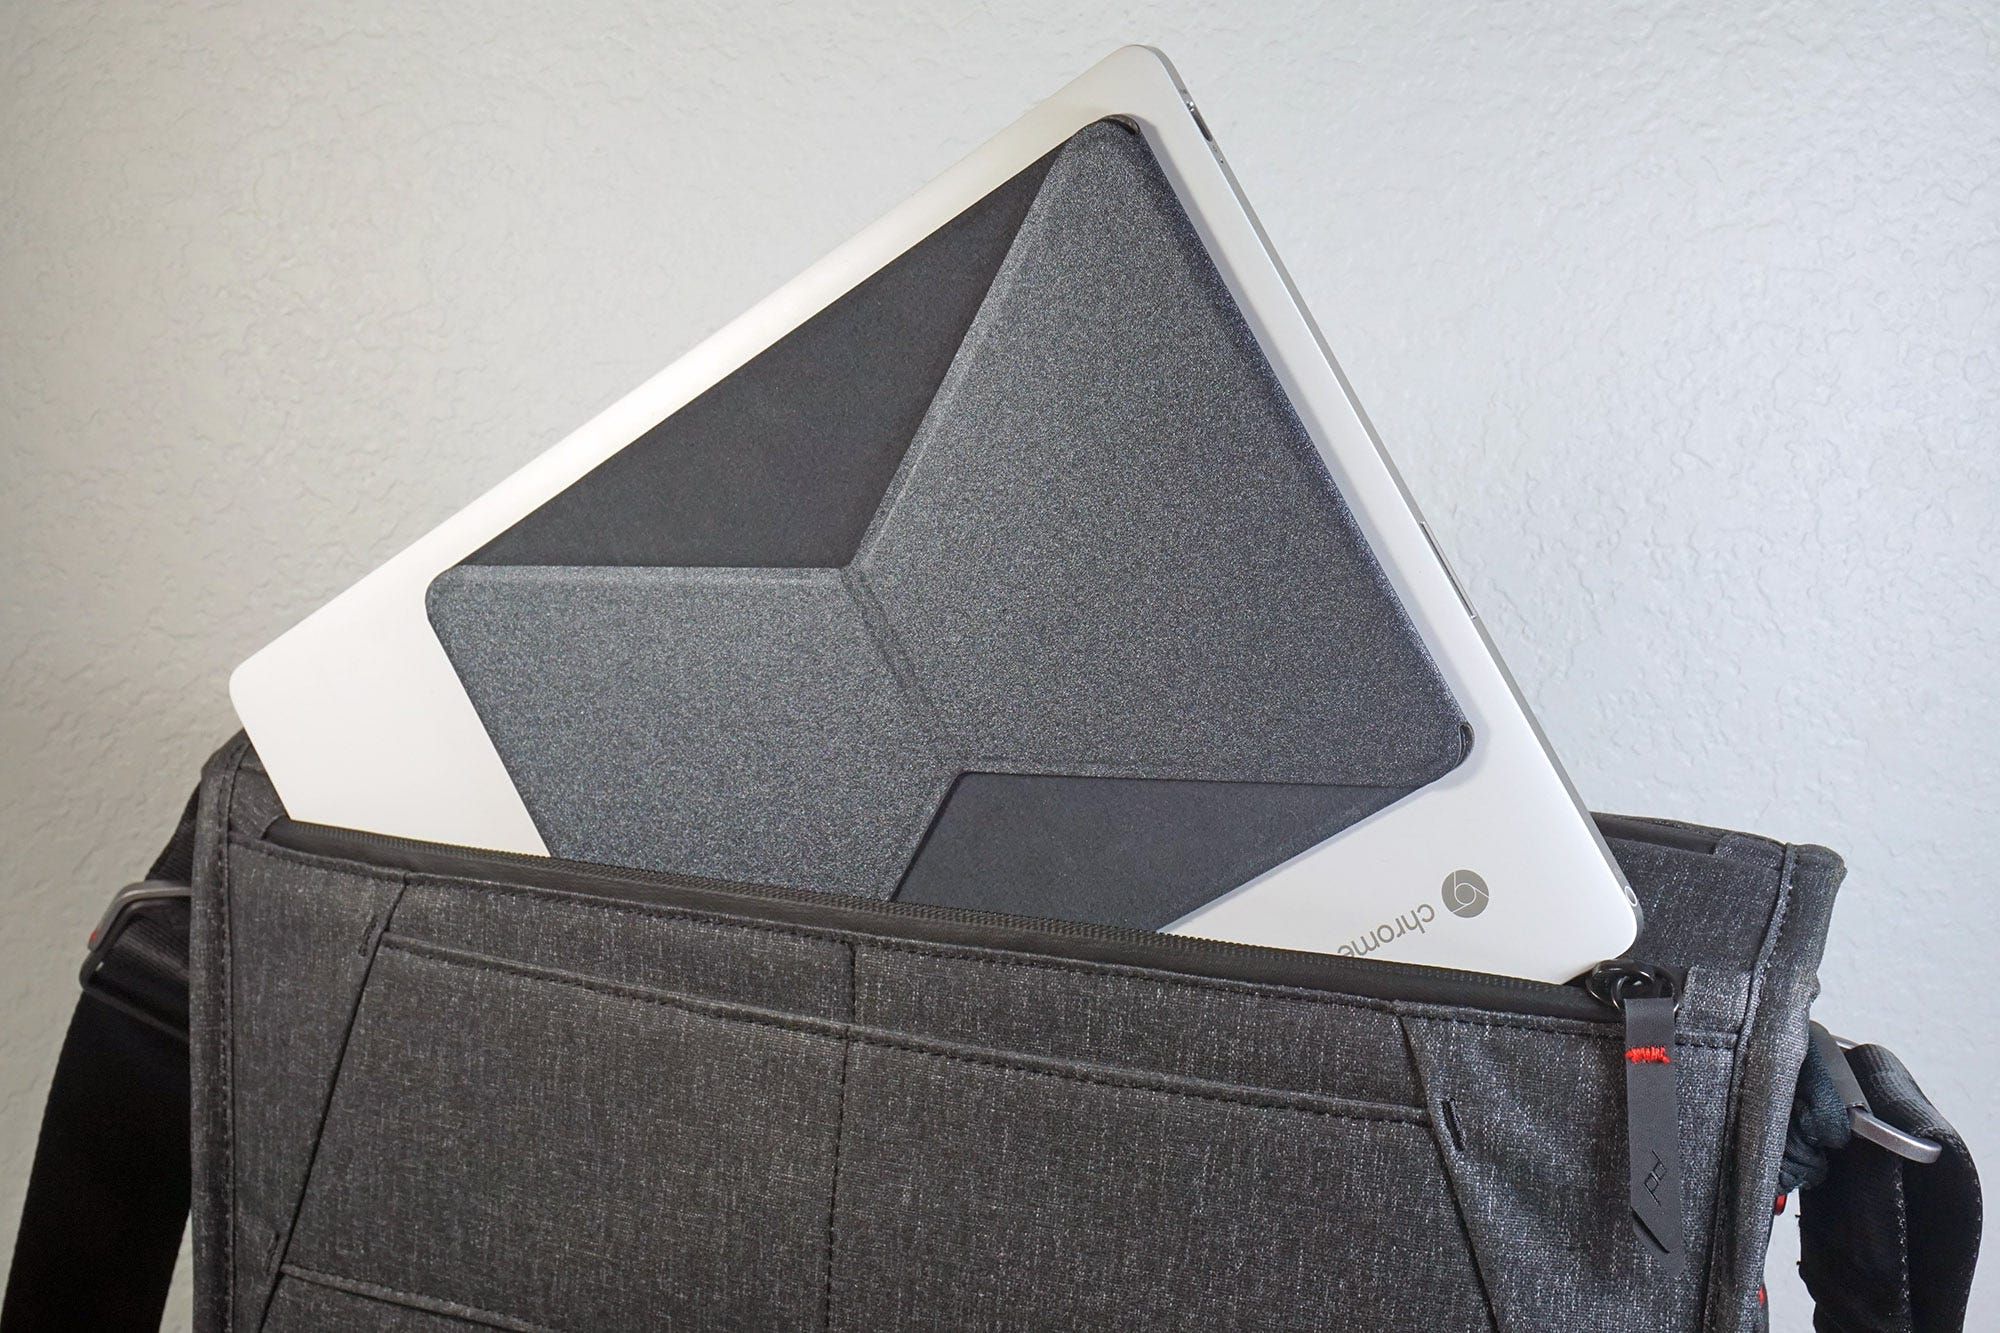 When folded down, the kickstand adds almost no bulk. It's easy to slip into my bag.